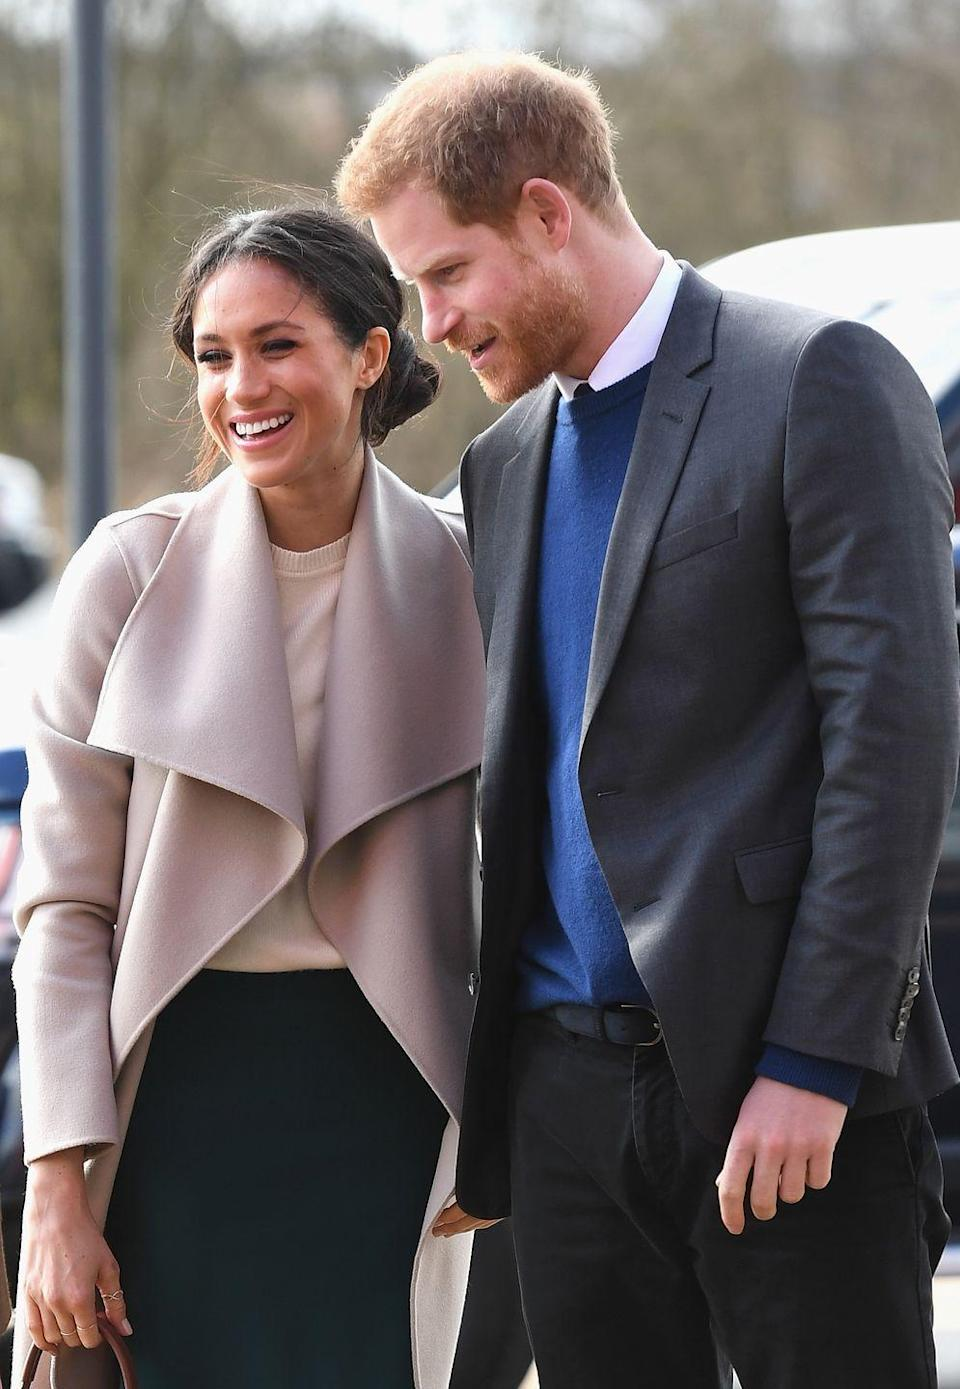 "<p><a href=""https://www.townandcountrymag.com/society/tradition/g19570257/prince-harry-meghan-markle-surprise-belfast-visit/"" rel=""nofollow noopener"" target=""_blank"" data-ylk=""slk:See all the photos from their appearance here."" class=""link rapid-noclick-resp"">See all the photos from their appearance here.</a></p>"